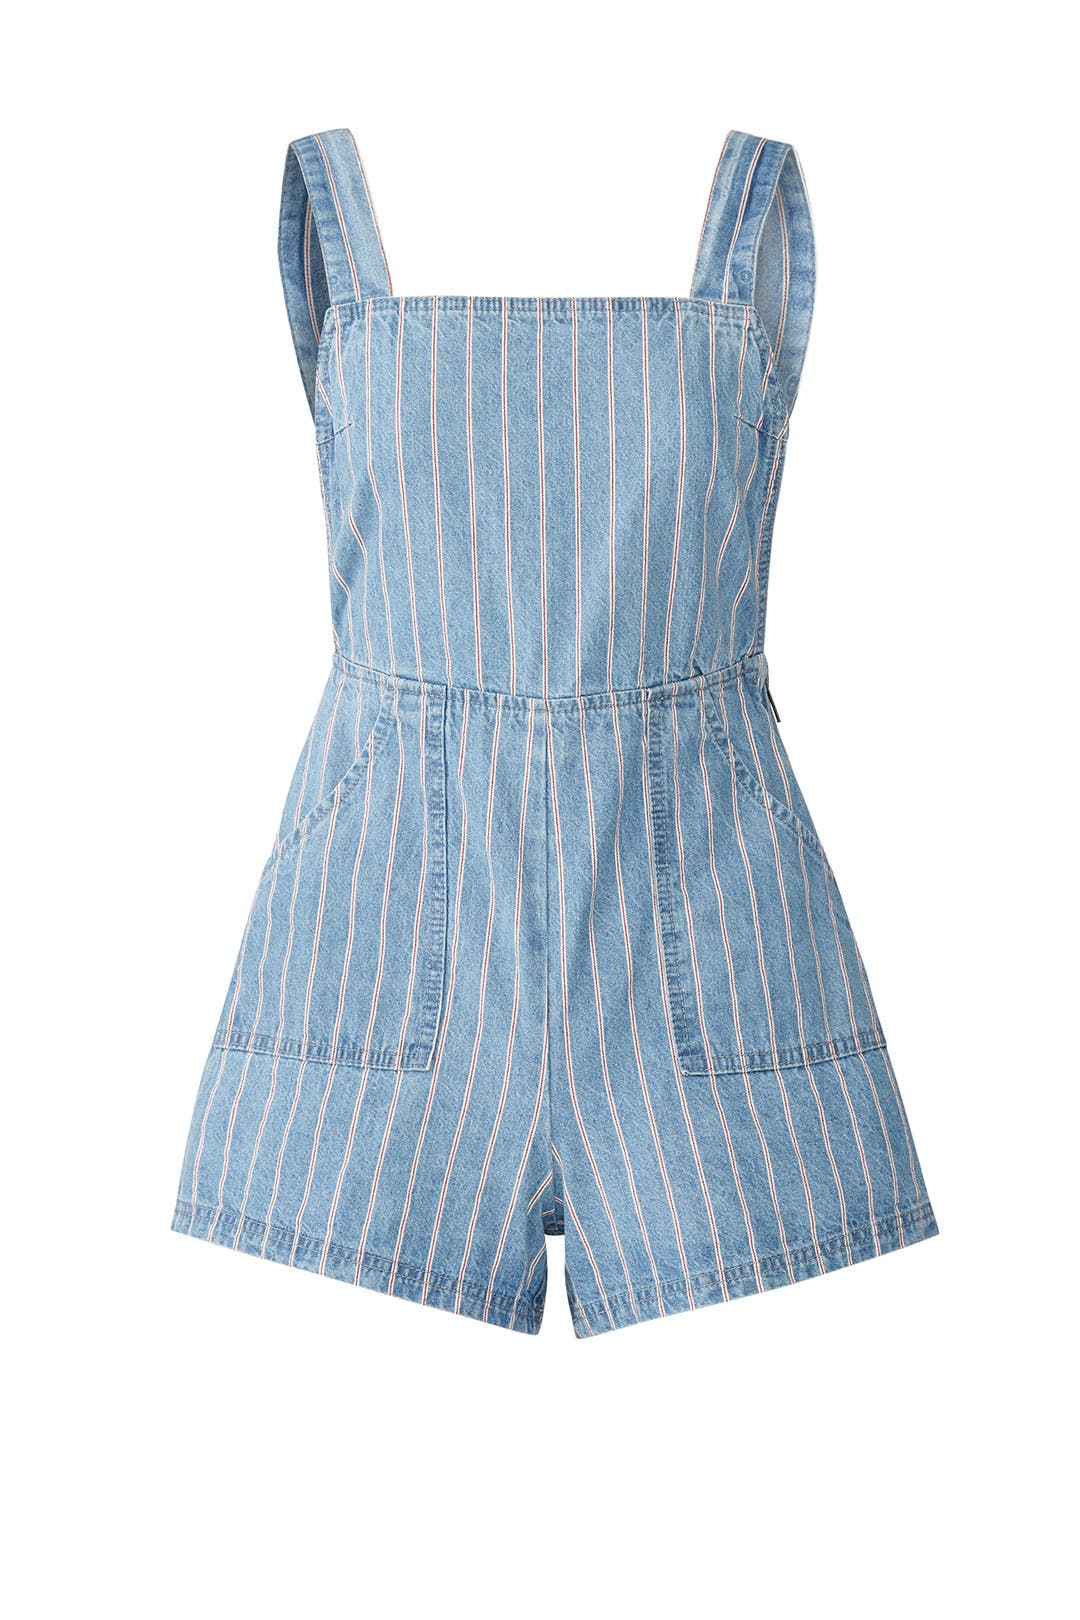 84a463edcbc Draw The Line Denim Romper by MINKPINK for  30